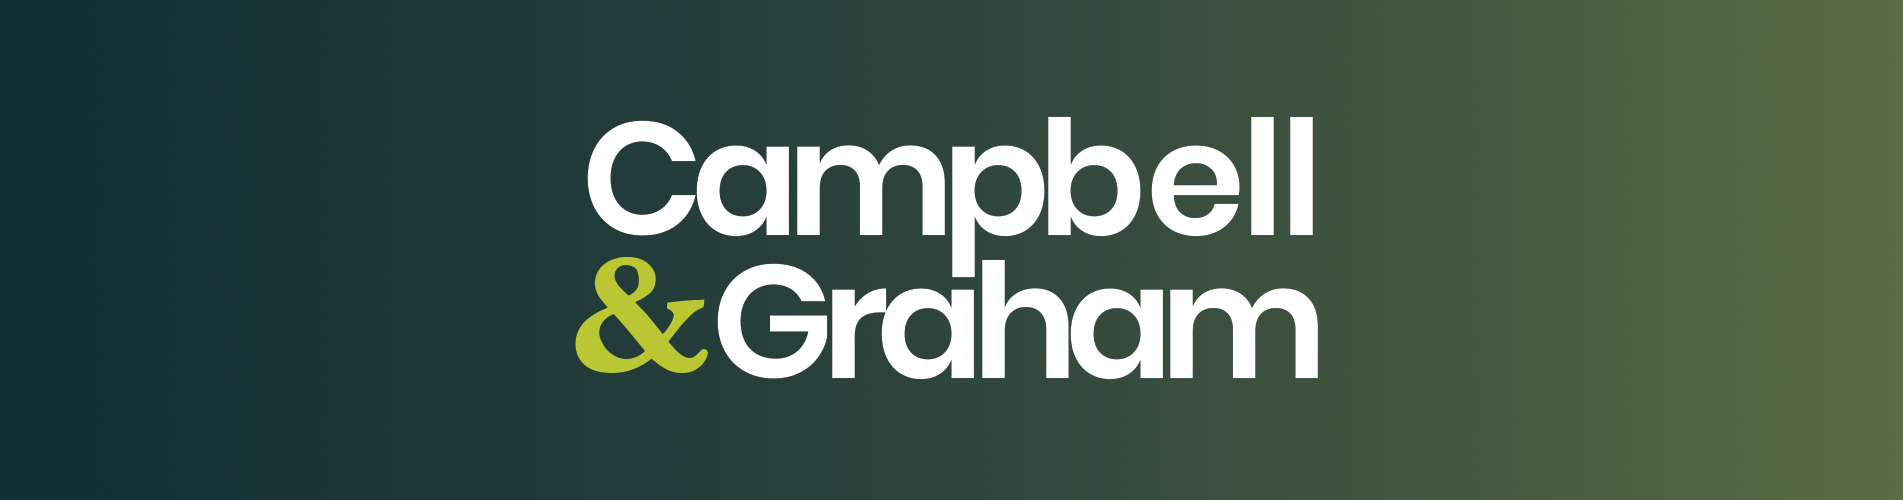 Our work with Campbell & Graham